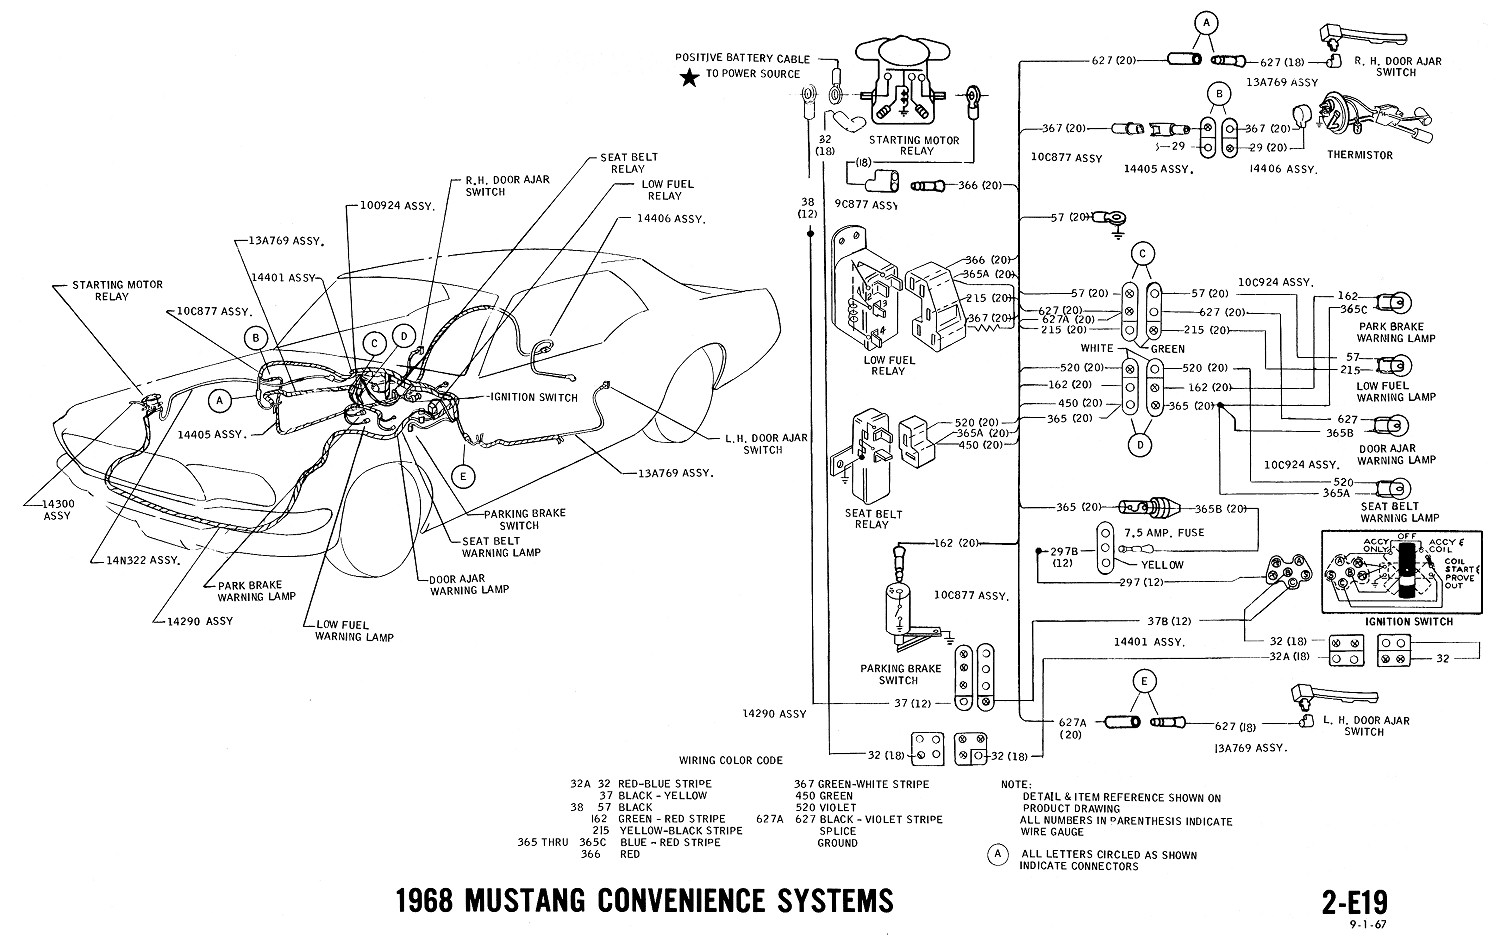 E19 1968 mustang wiring diagrams evolving software Chevy Ignition Wiring Diagram at crackthecode.co